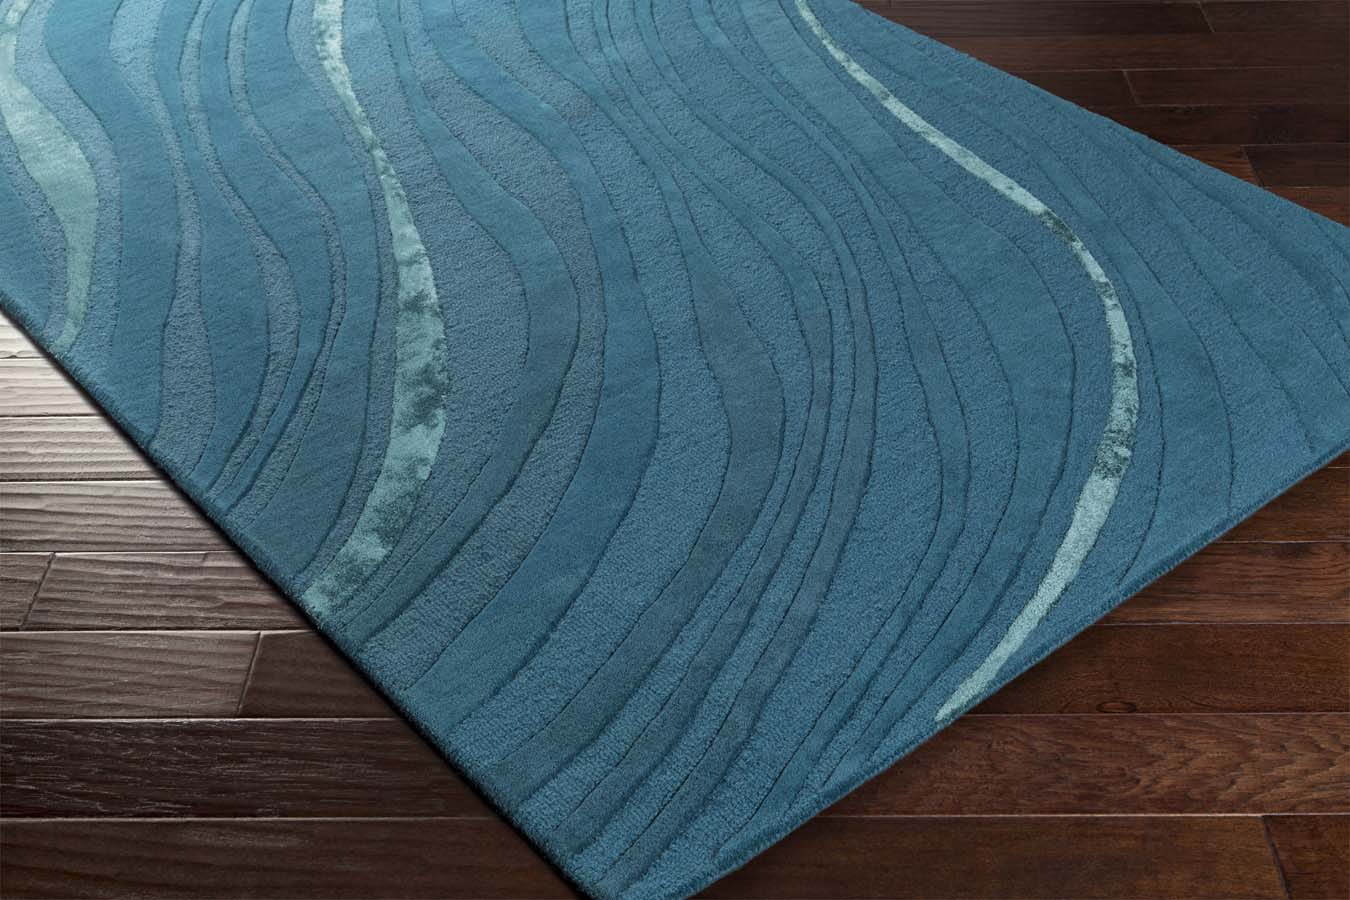 portsmouth braided rugs stripe com wool blue rug homespice area ultra